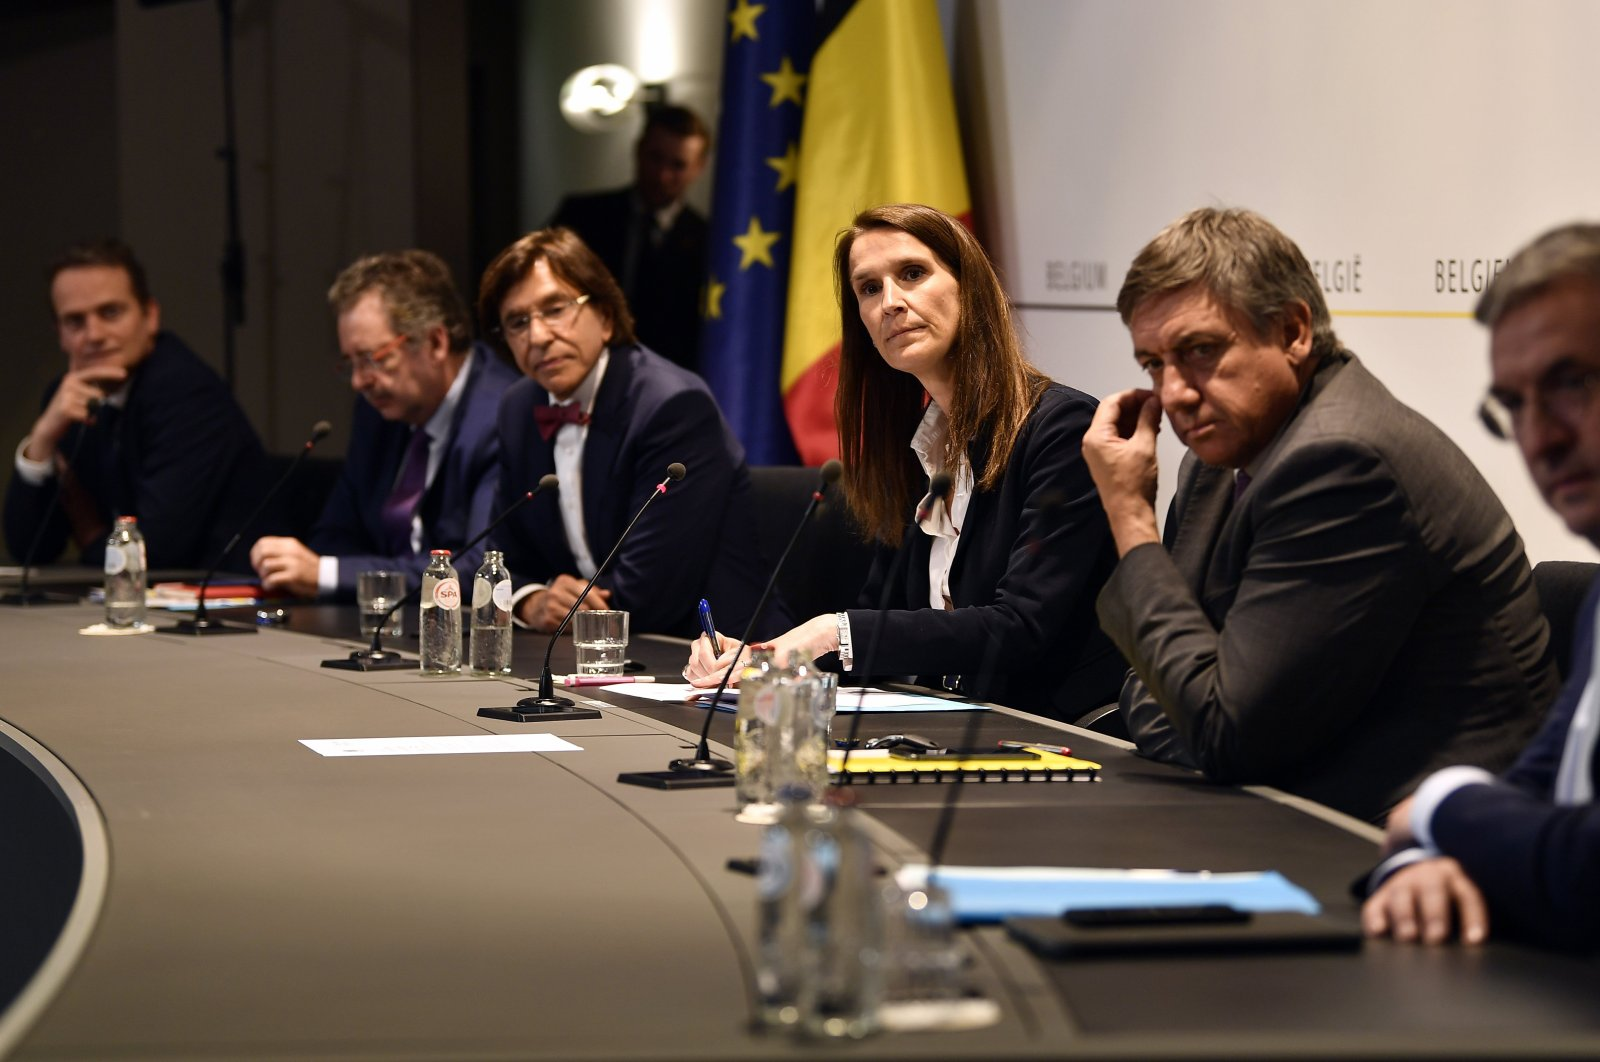 Belgium's Prime Minister Sophie Wilmes, third right, speaks during a media conference, amid the coronavirus outbreak in Brussels, May 13, 2020. (AP Photo)